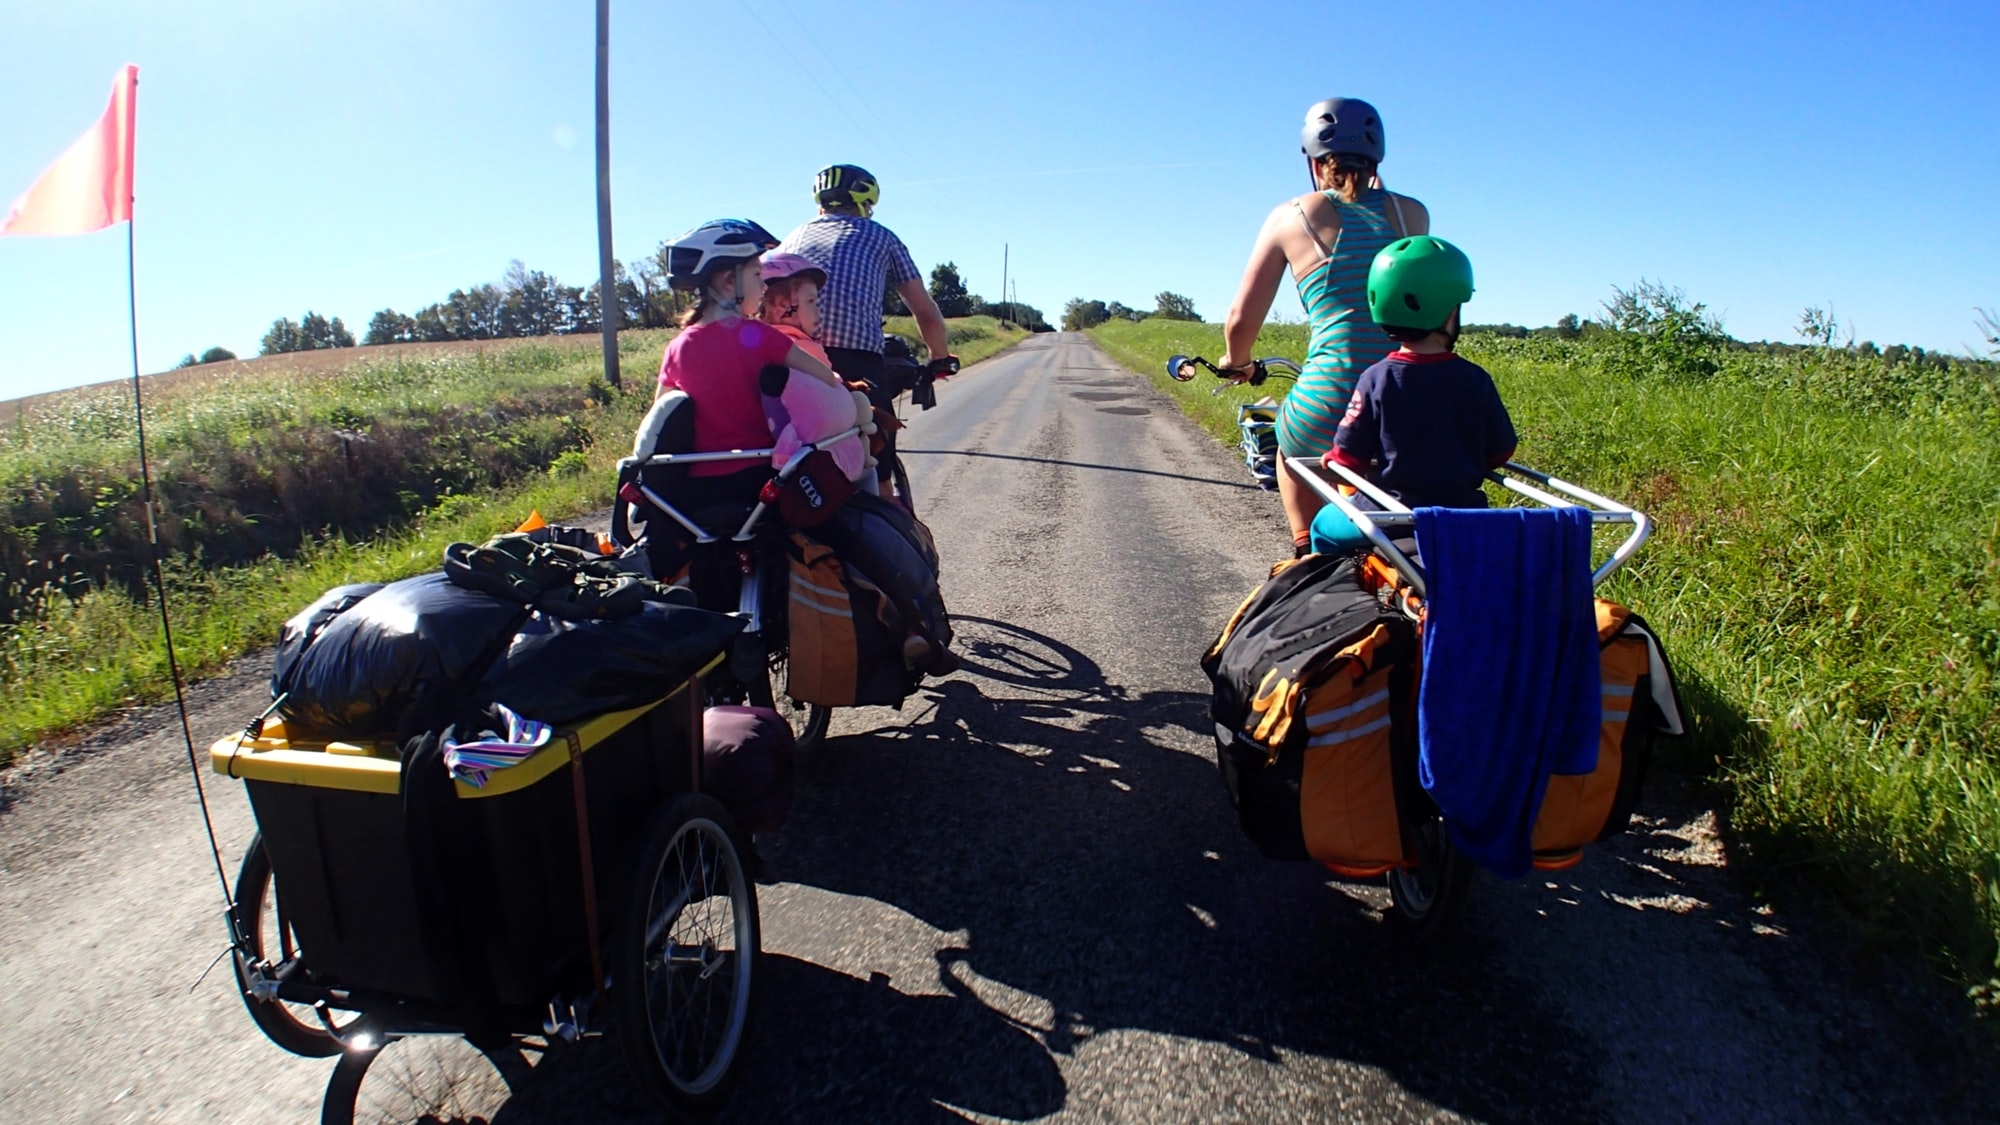 Biking home from an overnight familiy bike camping trip with cargo bikes.